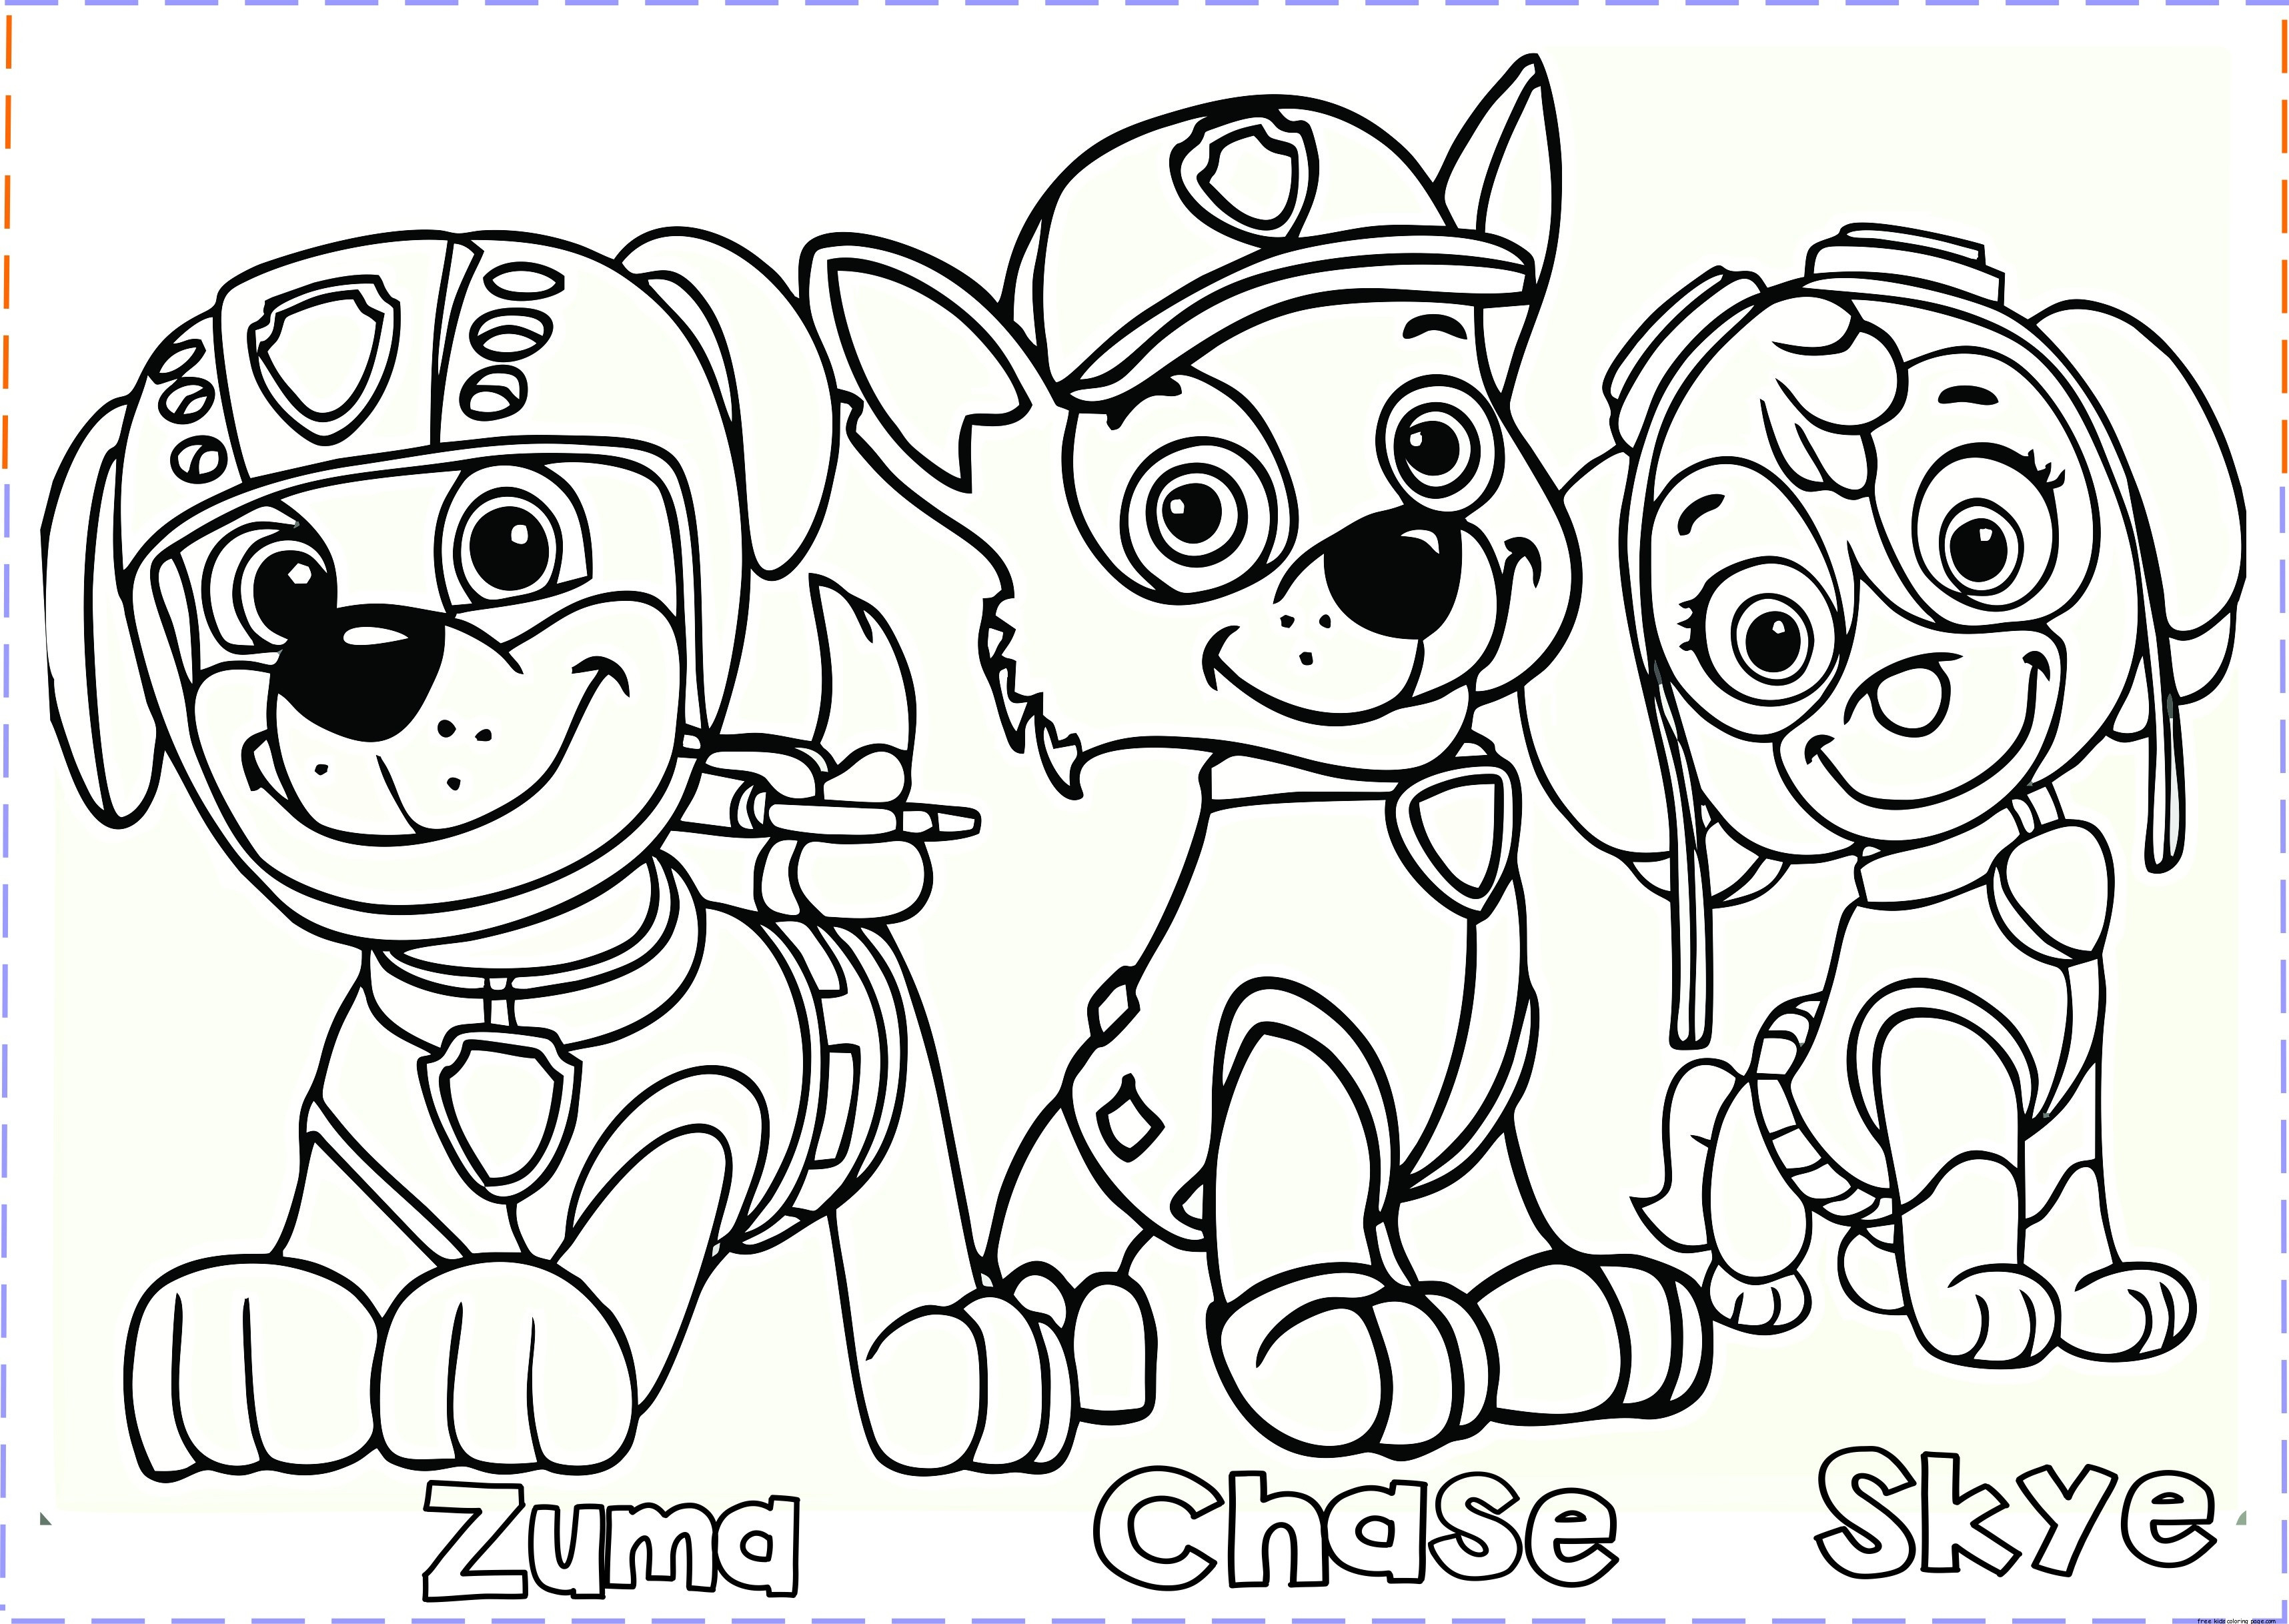 Pdf Coloring Pages For Kids Coloring Coloring Page Splendi Childrens Books Free Printable Kids